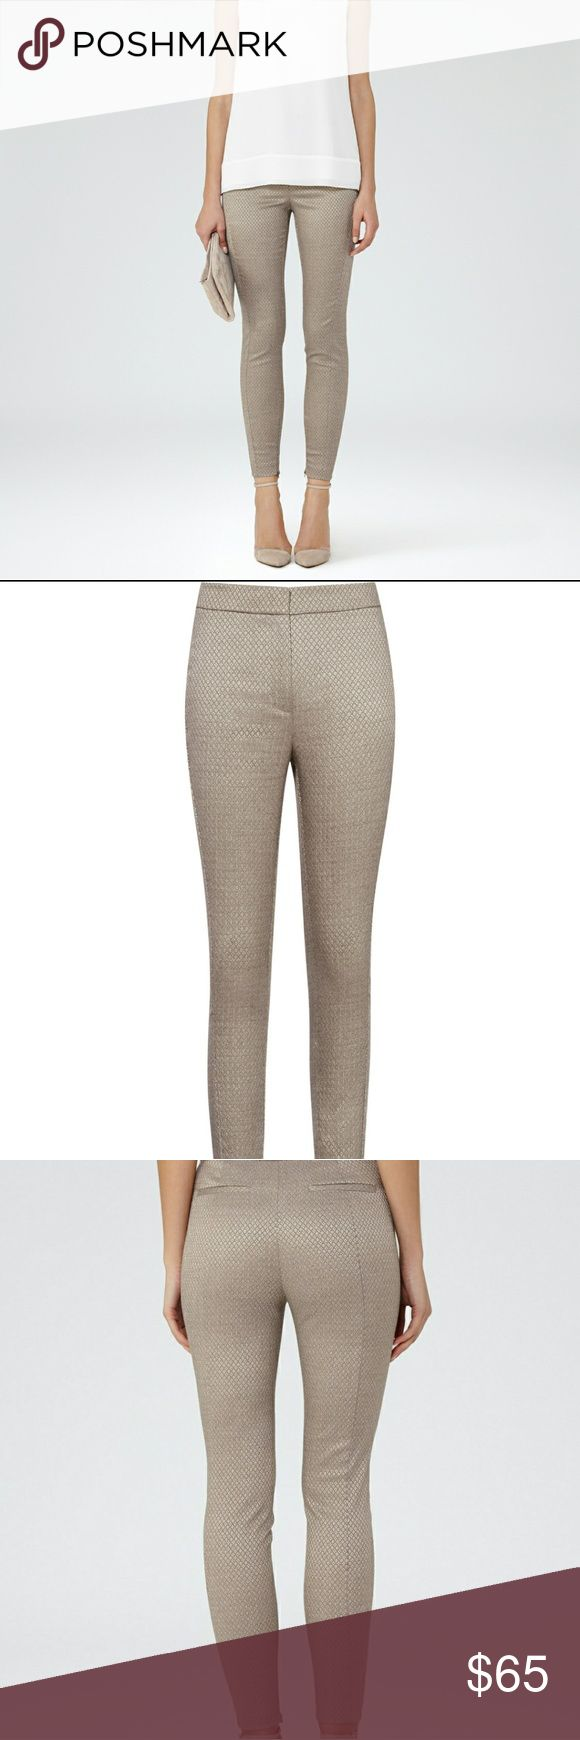 Reiss Jacquard Darleen Skinny Leggings Pants Trousers retail $195   Up the impact of your separates collection with the addition of the pewter-grey Darleen trousers.  Tailored to a slim fit and woven with a contrasting jacquard pattern,  this statement pair works best with a simple black knit or a silk cami.  Mid rise.  Hook and zip fastening.  Wash care: Dry Clean Only.  Composition: 81% Polyester 17% Viscose 2% Elastane.  Color: metallic  sz o  Tags attached are from TJ mass Runway…